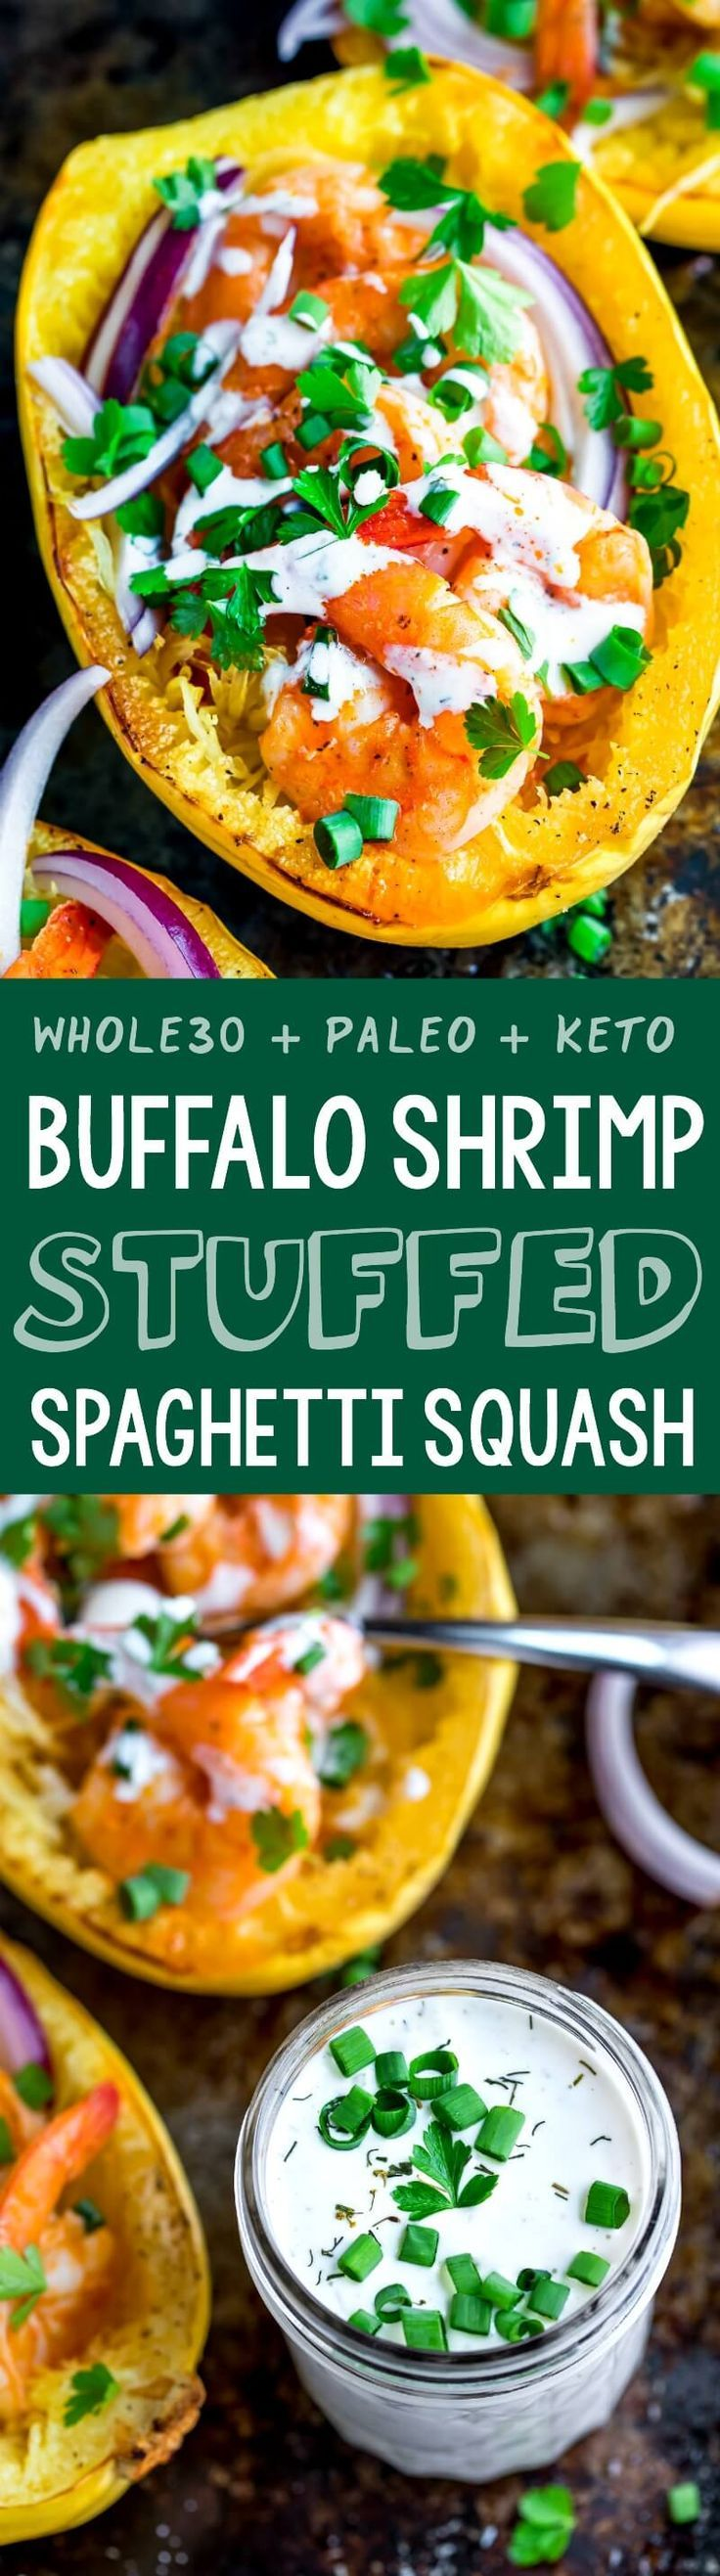 This crazy delicious Buffalo Shrimp Spaghetti Squash with Paleo Ranch Dressing is Whole30 compliant and gloriously gluten-free. Love it so!